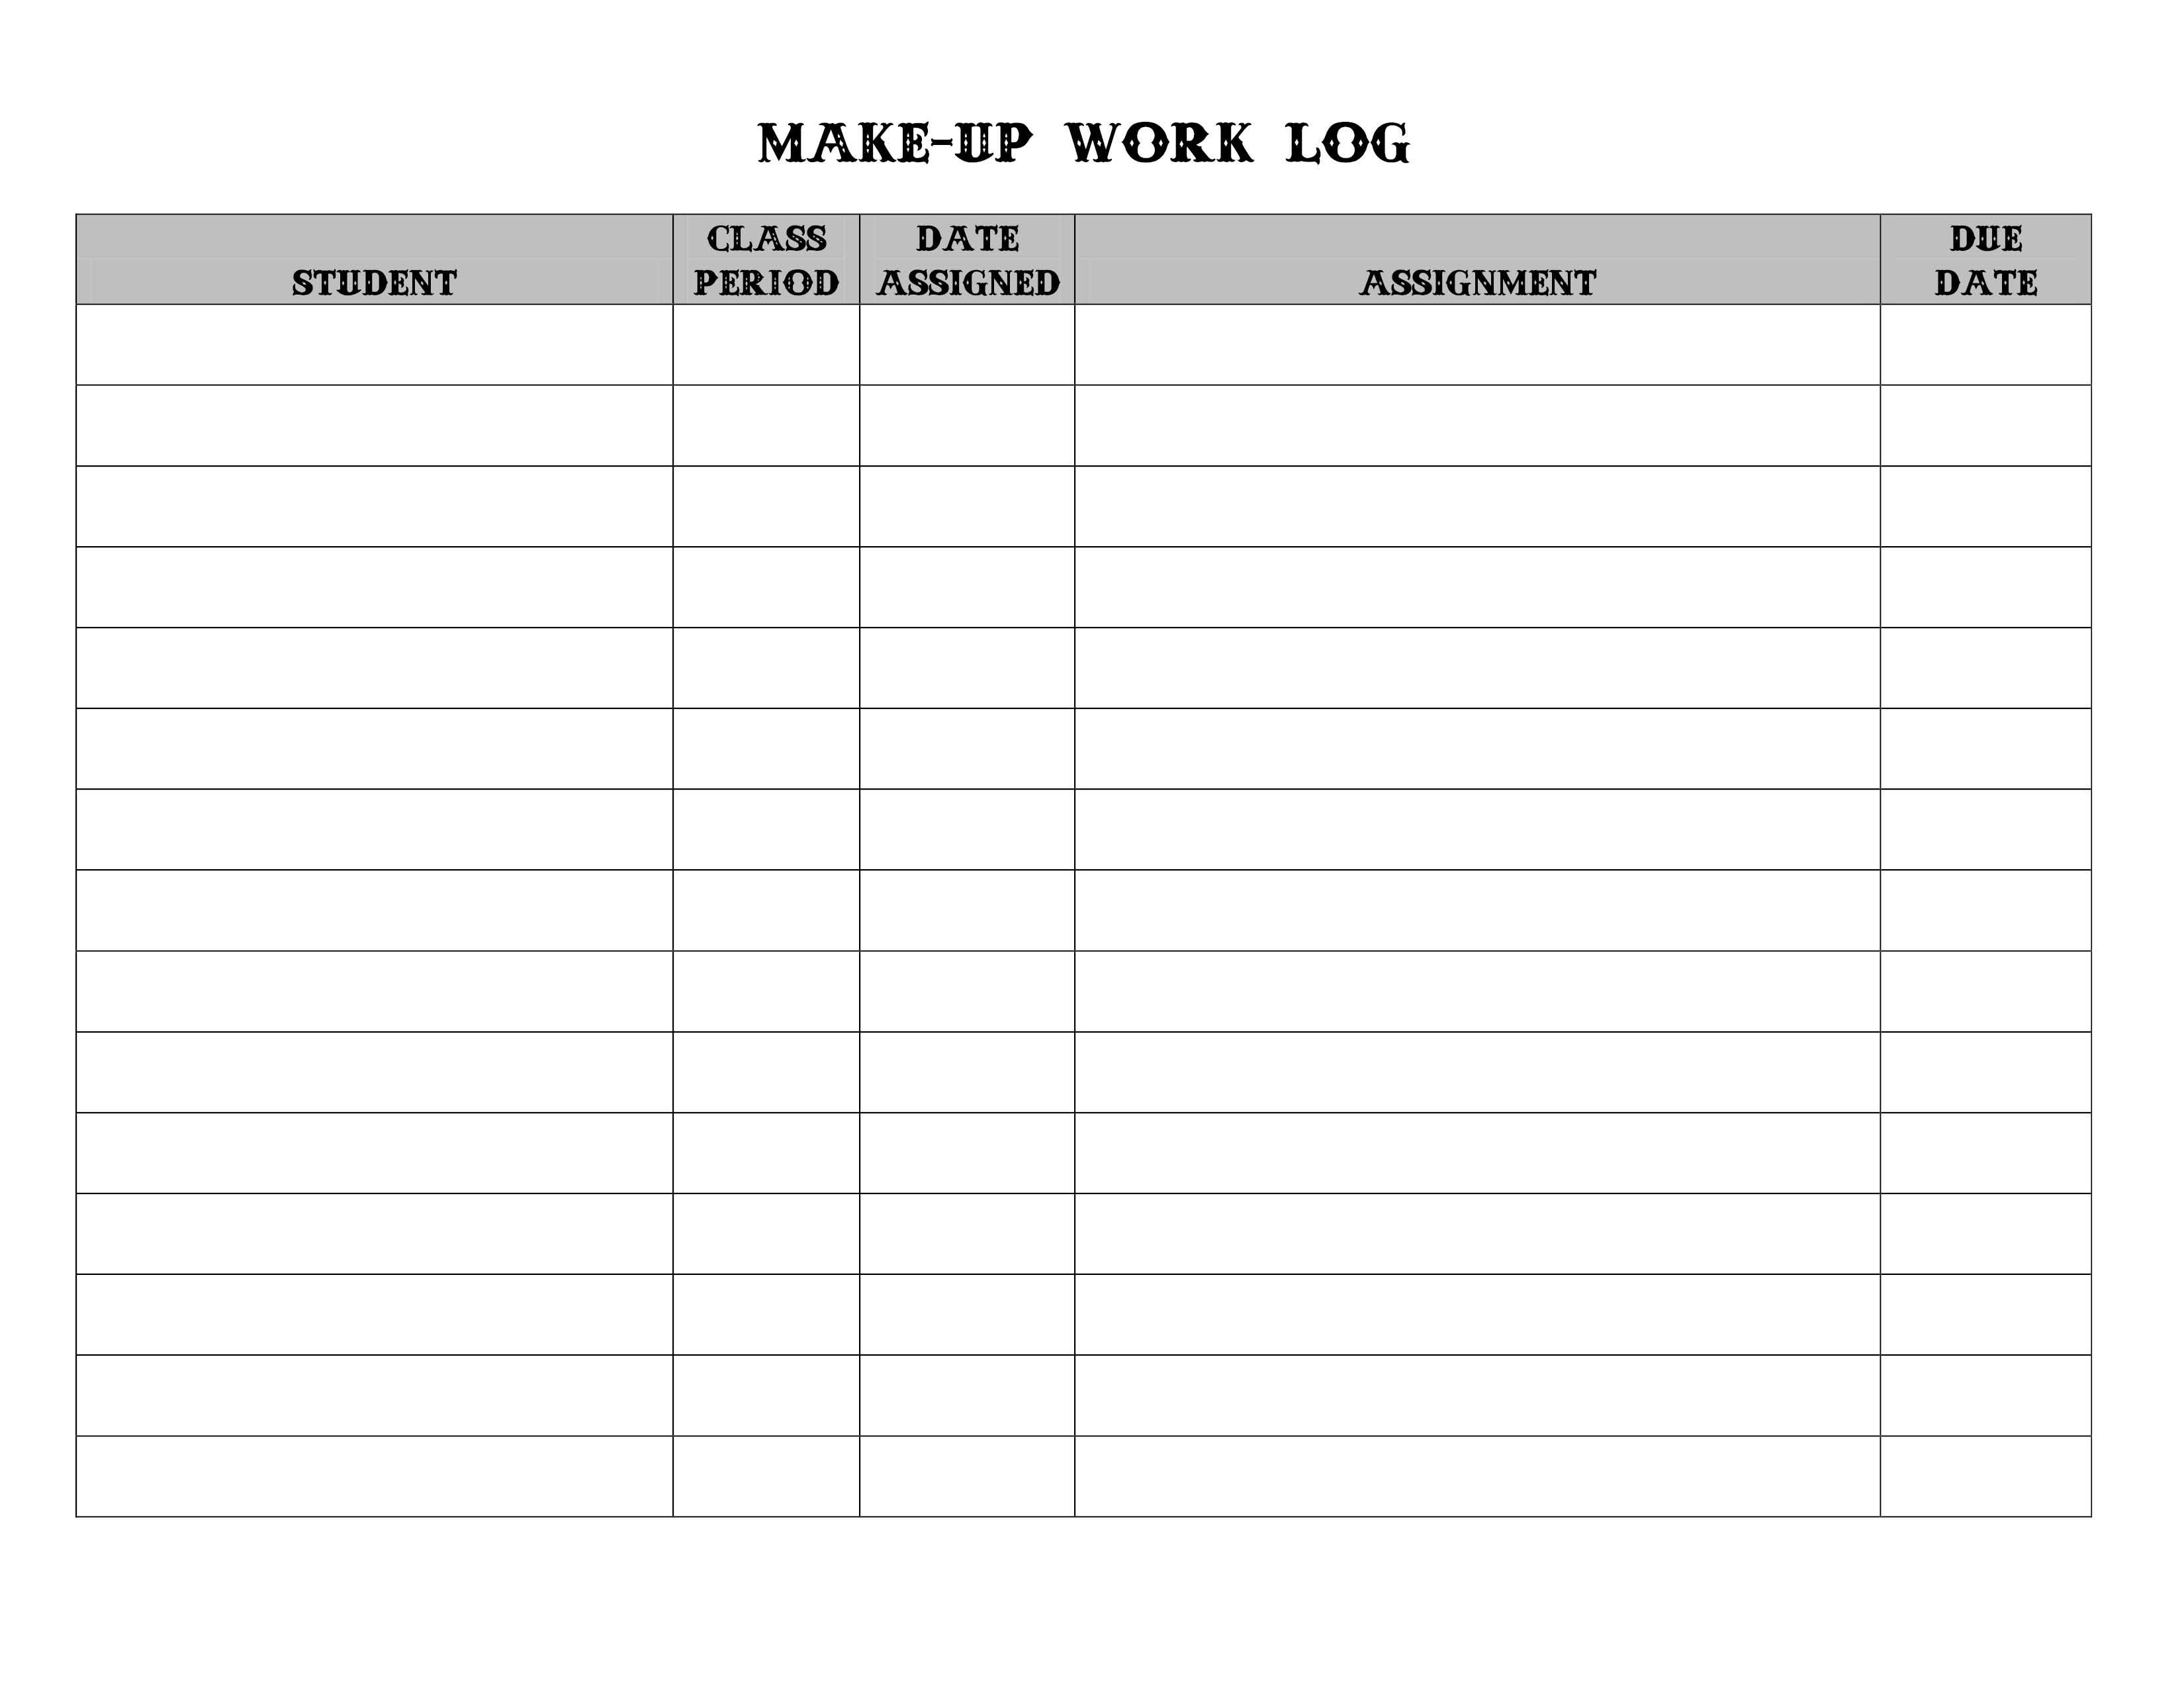 Make Up Work Log I Use This Everyday When I Check Attendance If I Am Giving Any New